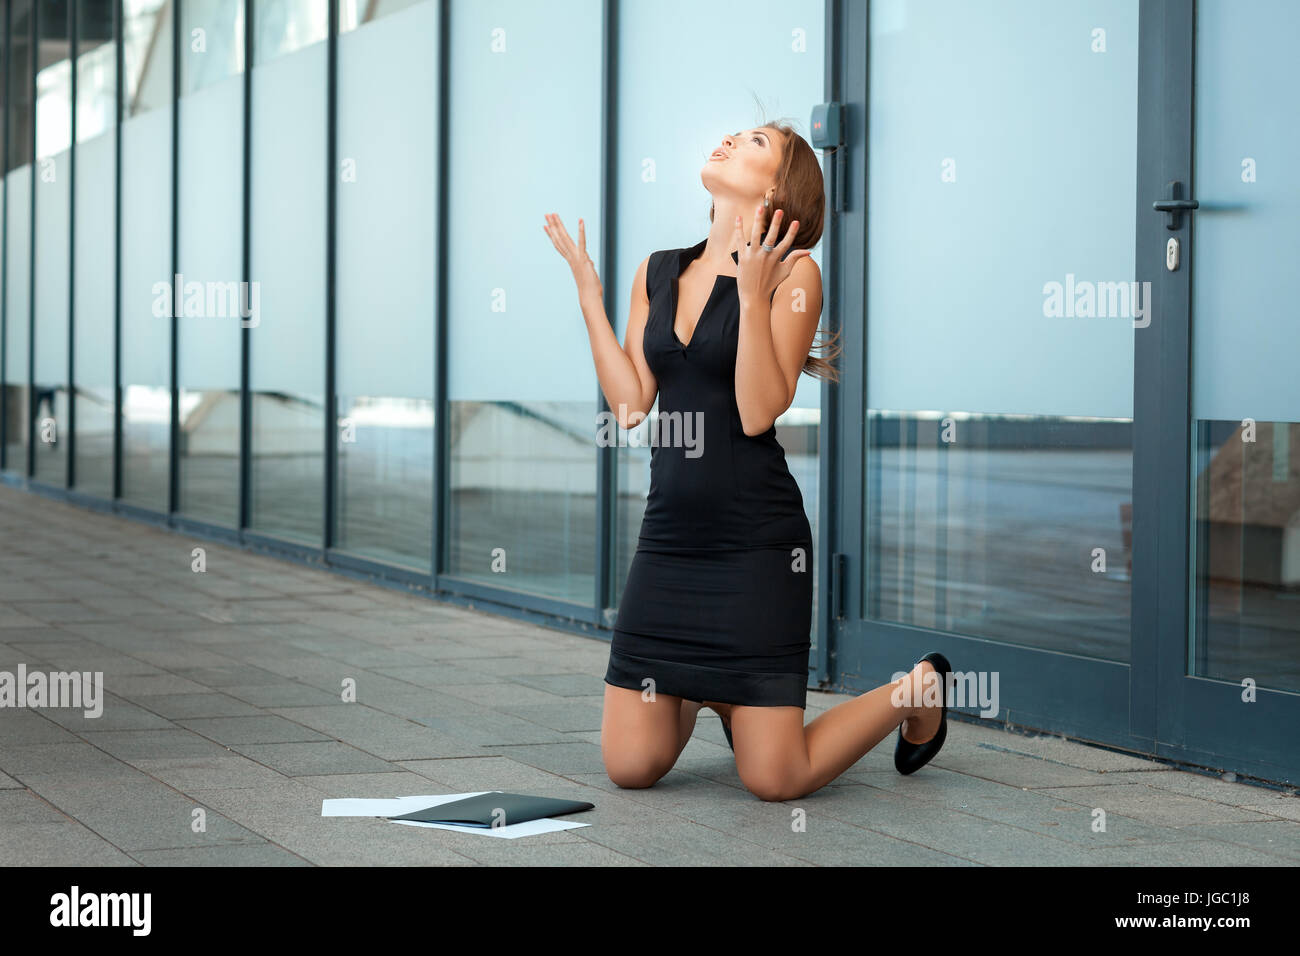 Girl knelt down and rejoices. Near scattered documents. - Stock Image